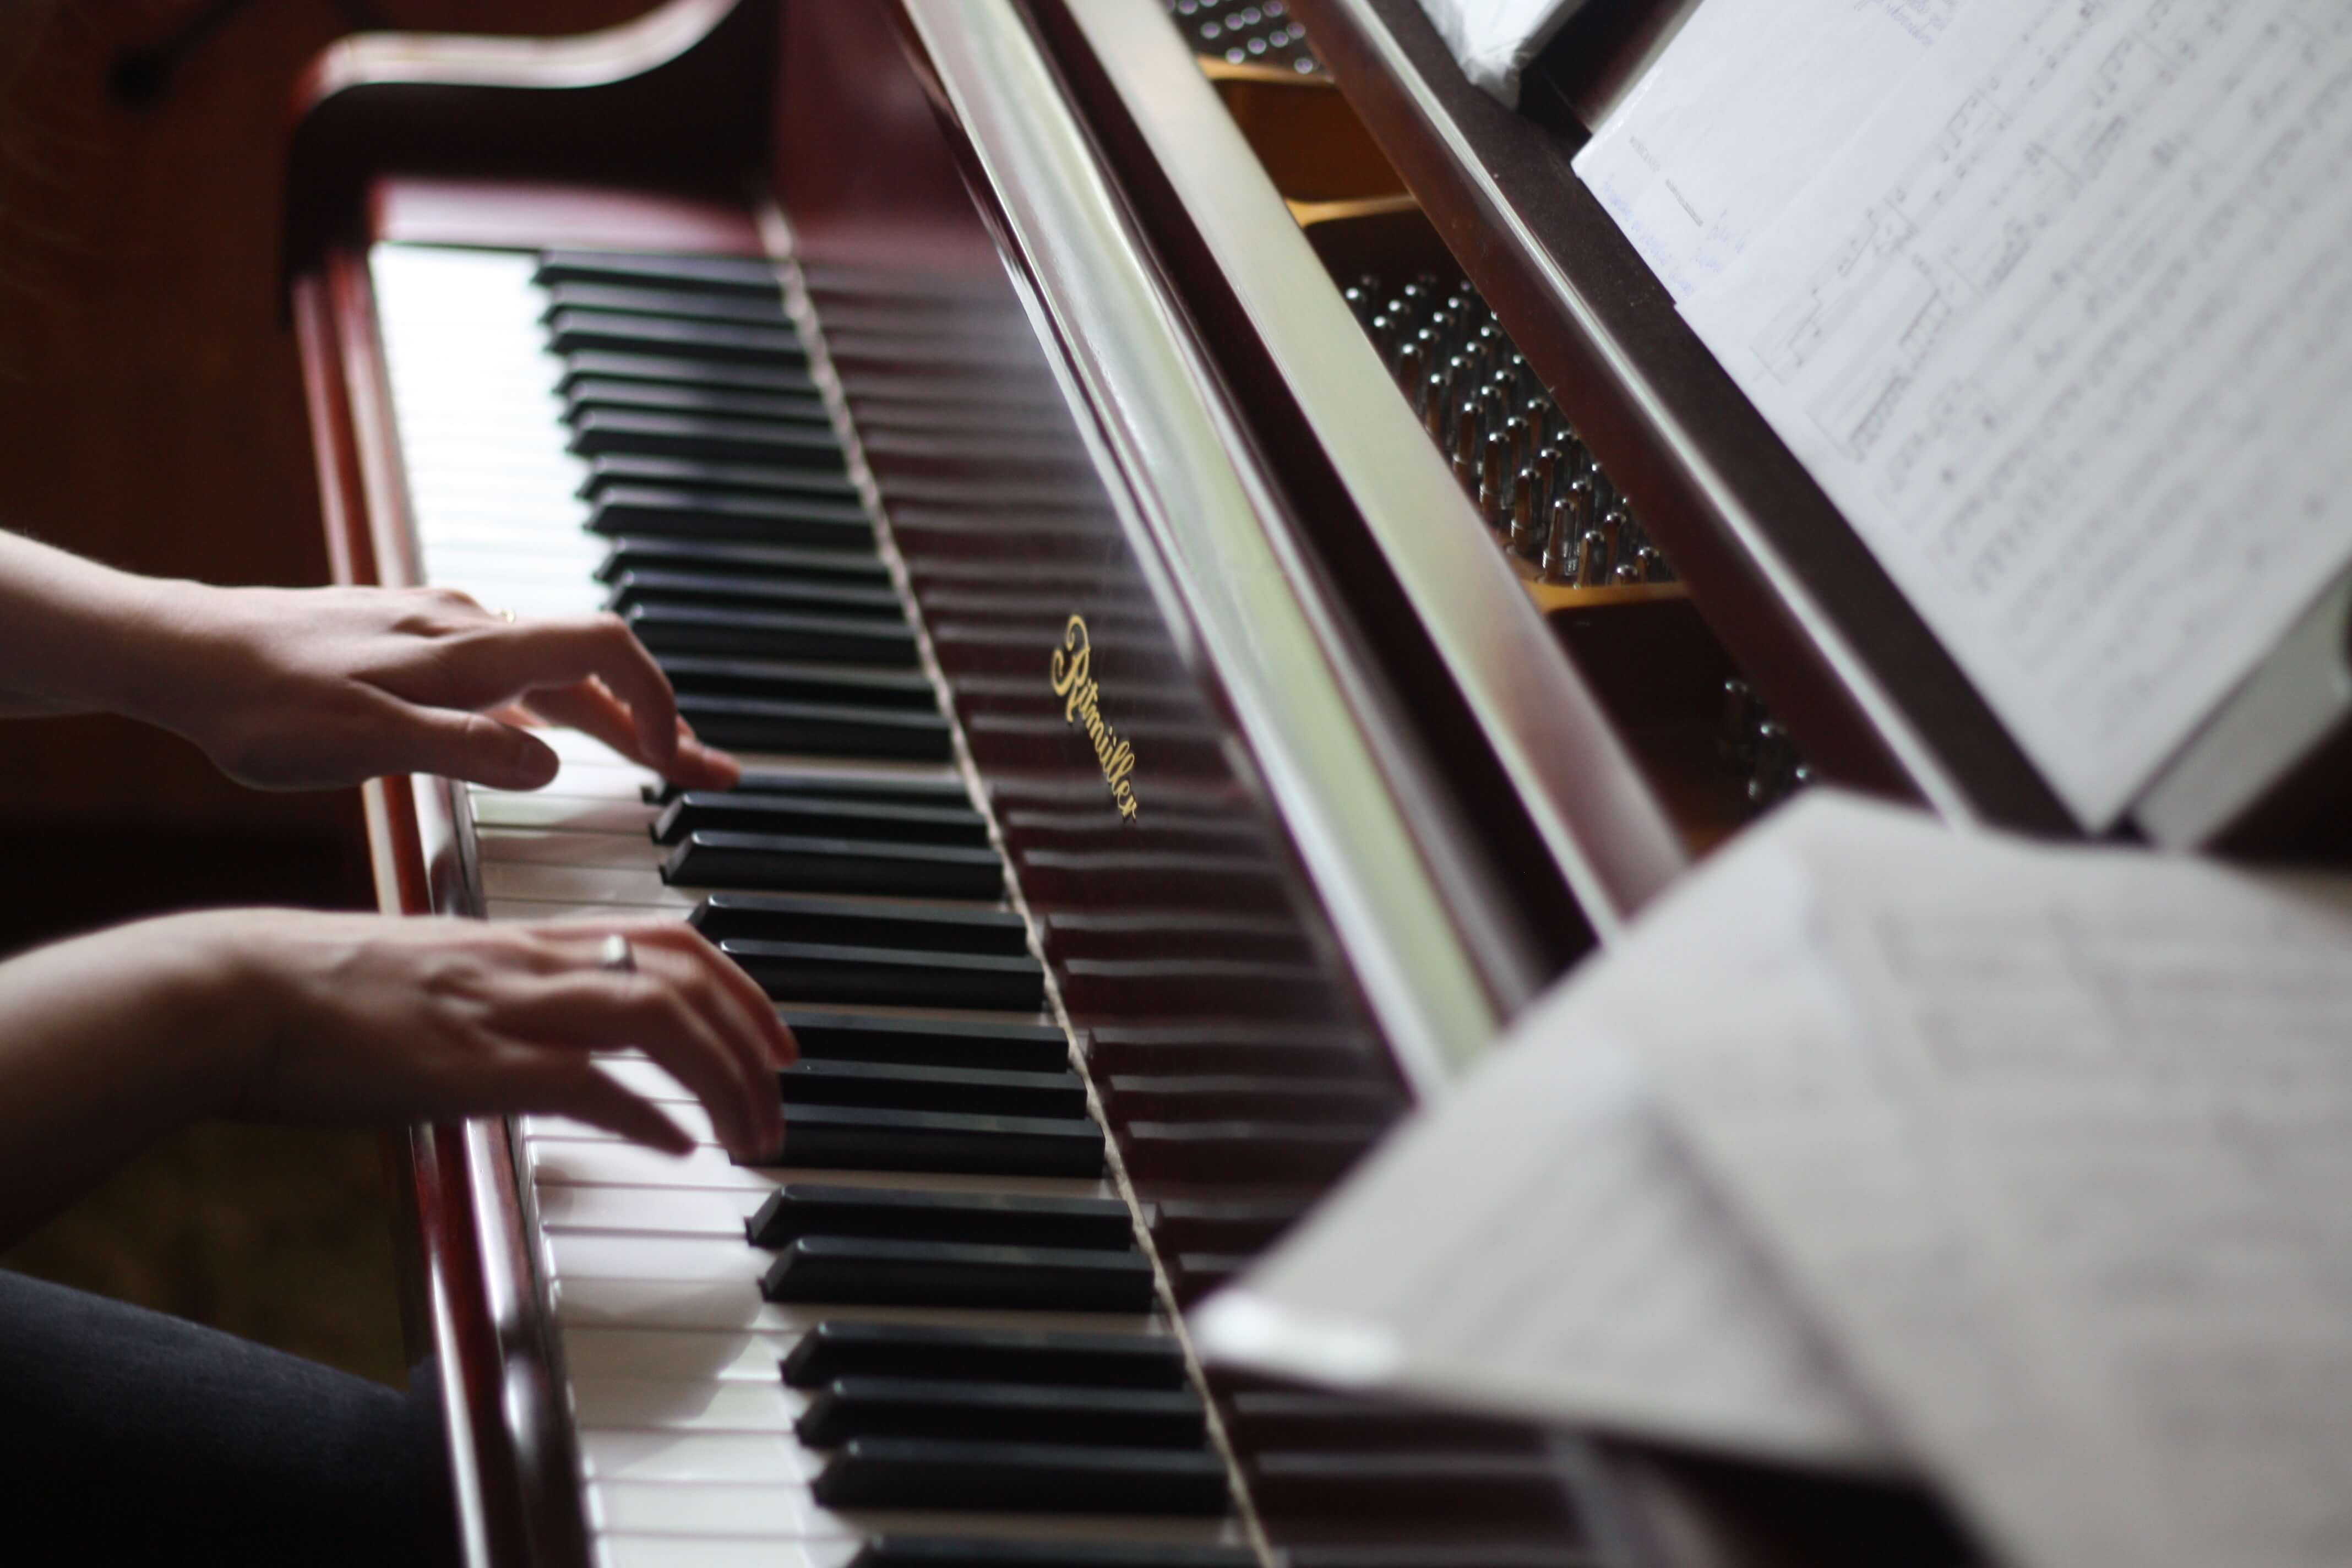 Play a musical instrument like a piano